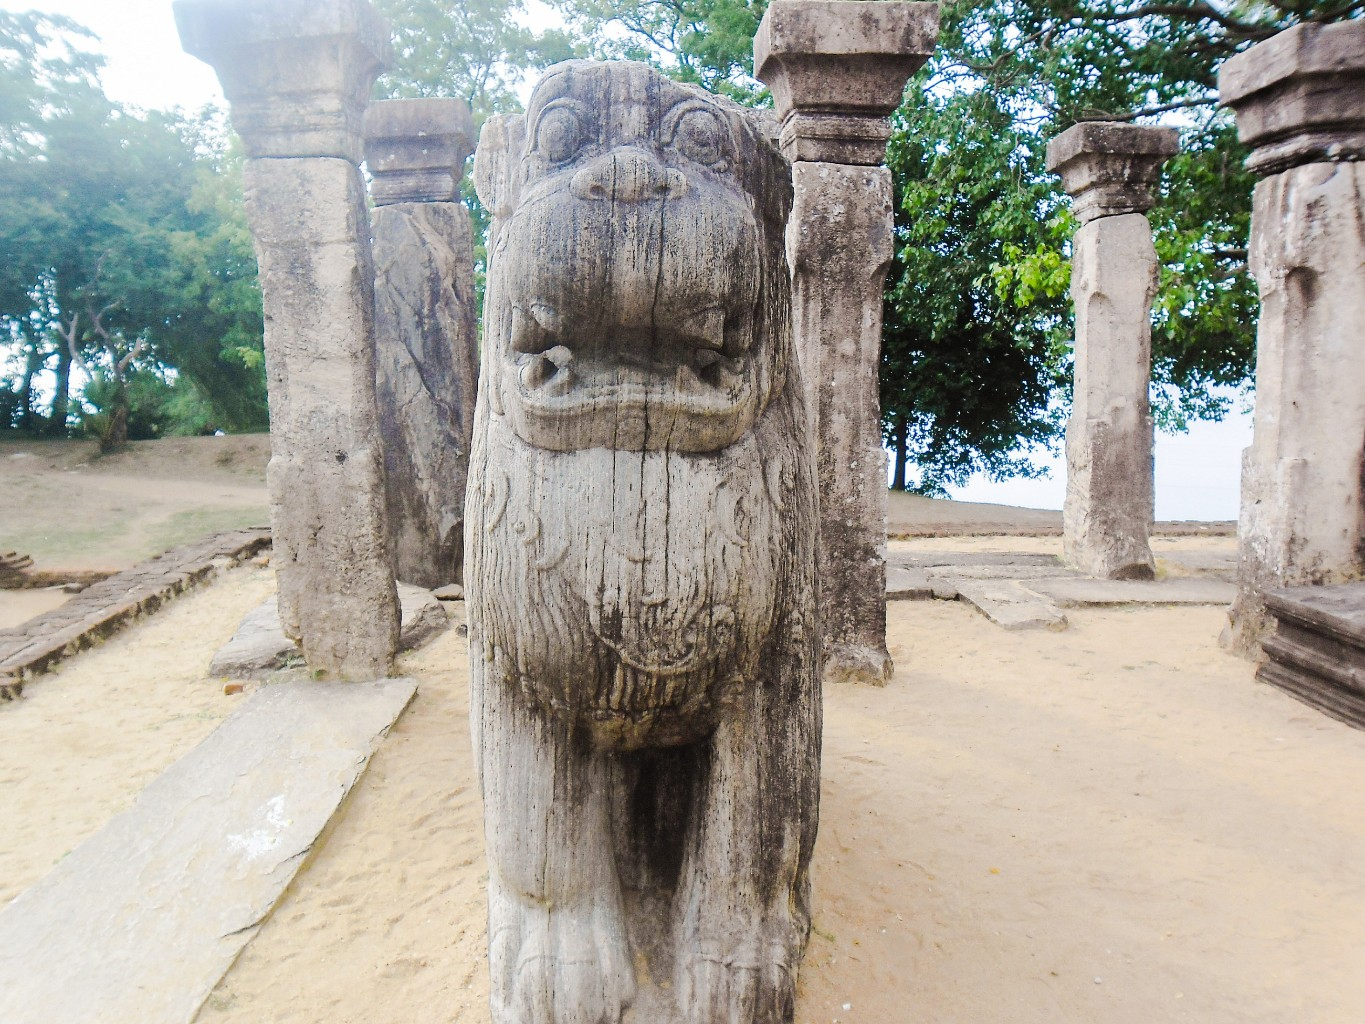 Council-Chamber-of-Nissankamalla-Ancient-City-of-Polonnaruwa-9